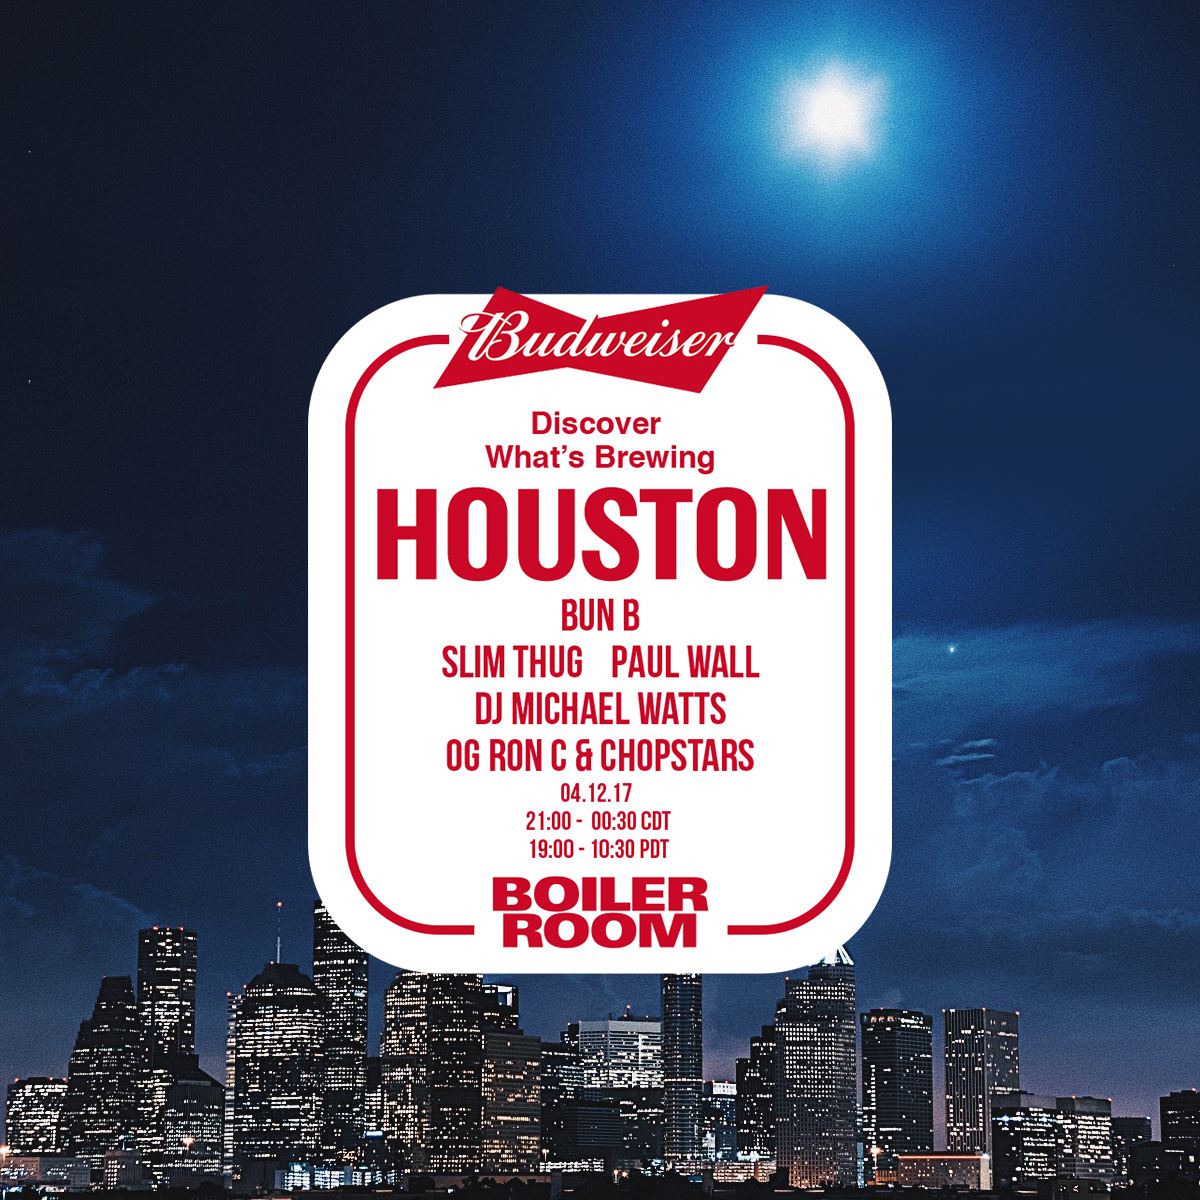 Boiler Room x Budweiser: Houston Flyer Image